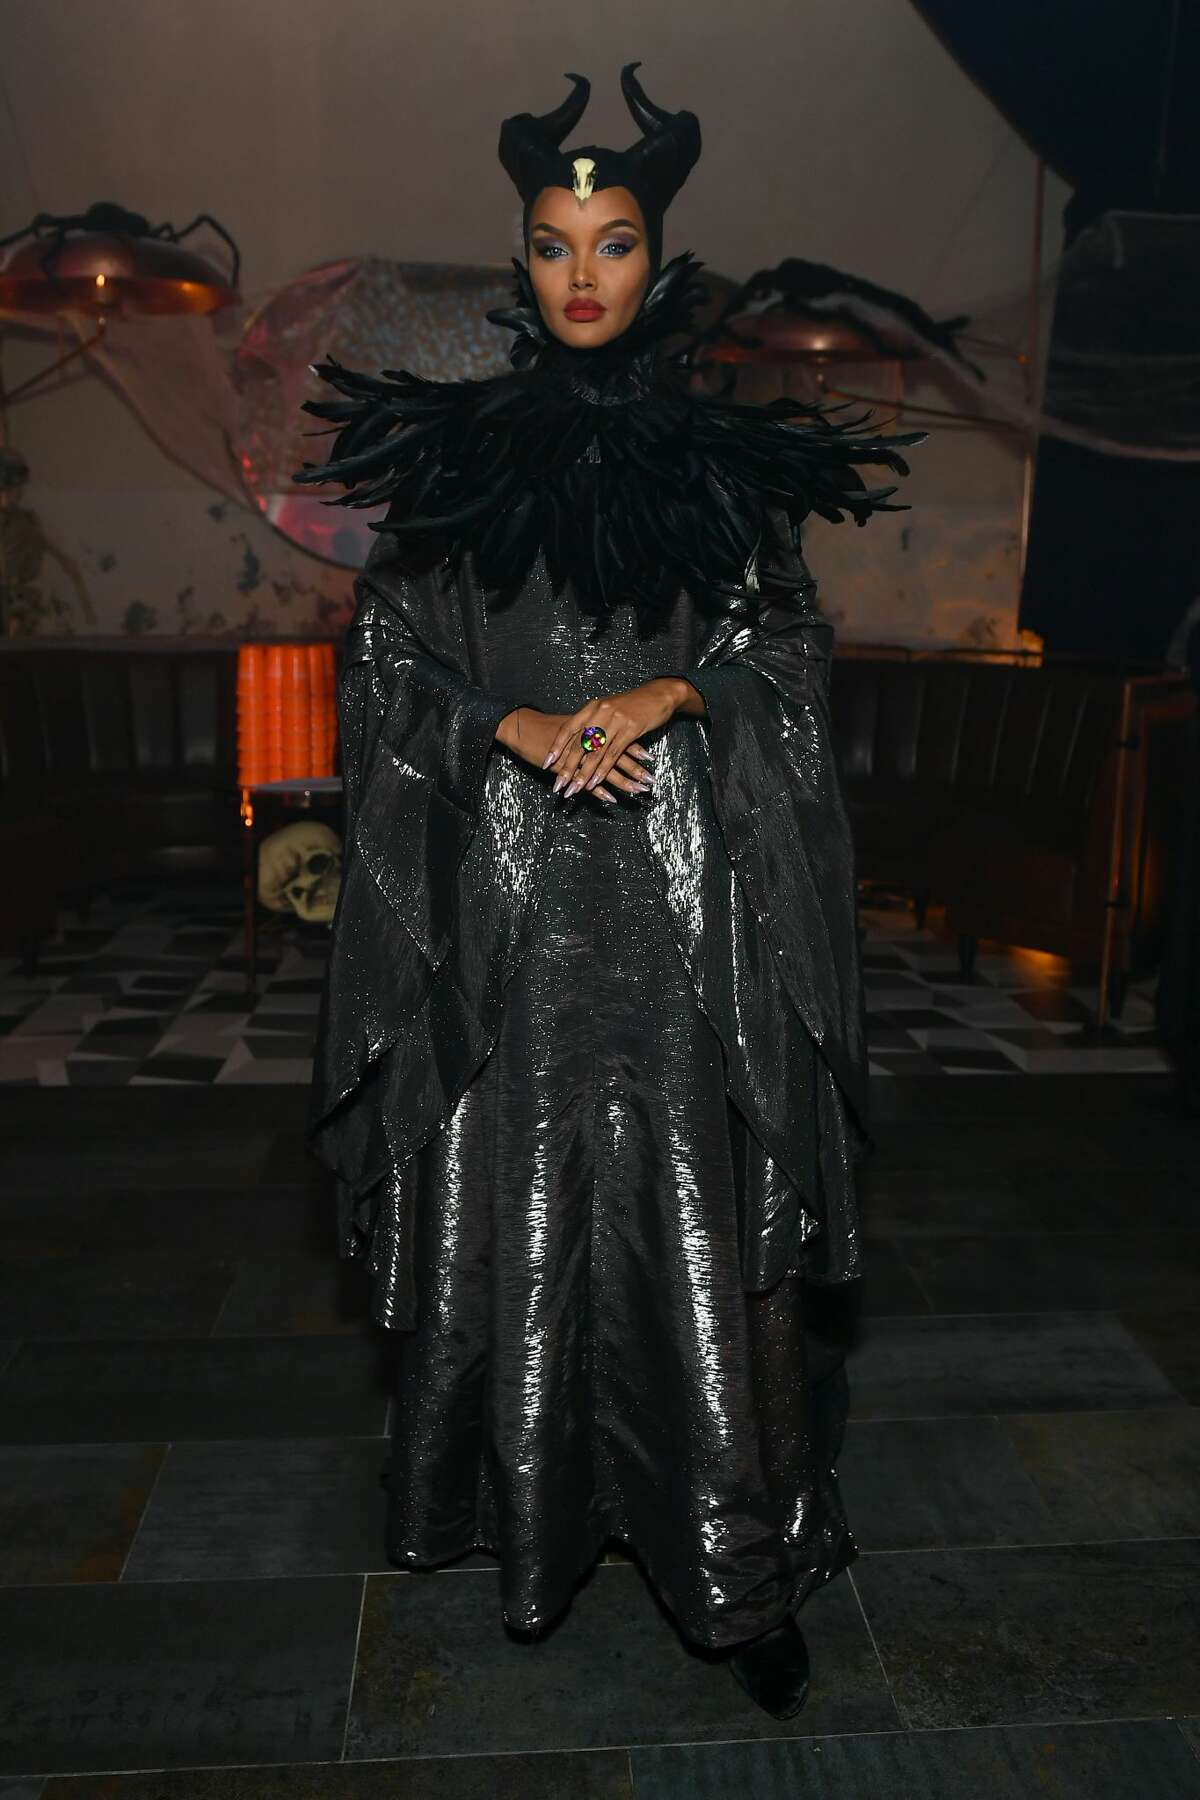 Halima Aden attends Heidi Klum's 20th Annual Halloween Party presented by Amazon Prime Video and SVEDKA Vodka at Cathédrale New York on October 31, 2019 in New York City. (Photo by Mike Coppola/Getty Images for Heidi Klum)